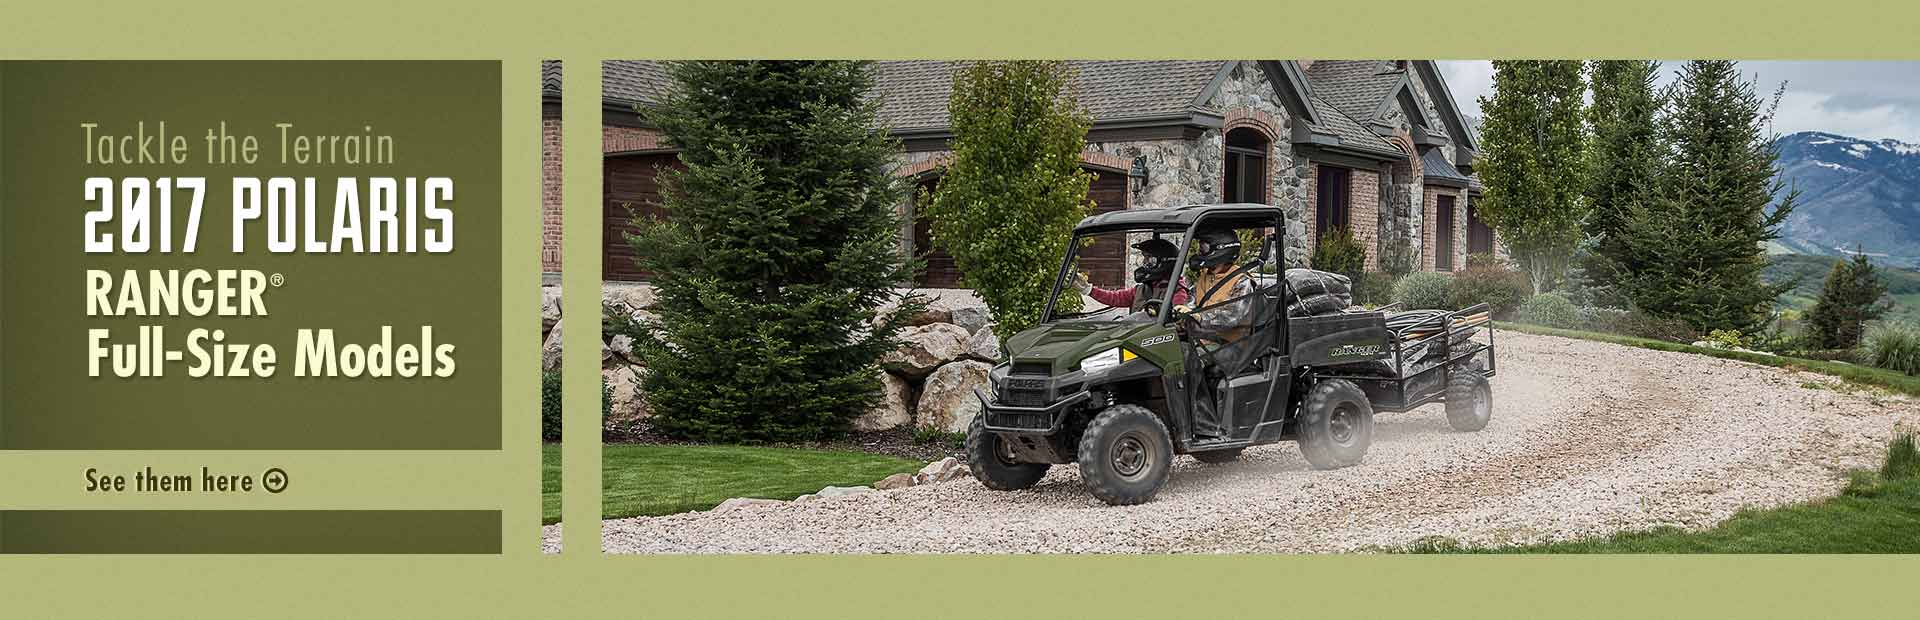 2017 Polaris RANGER® Full-Size Models: Click here to see our selection.